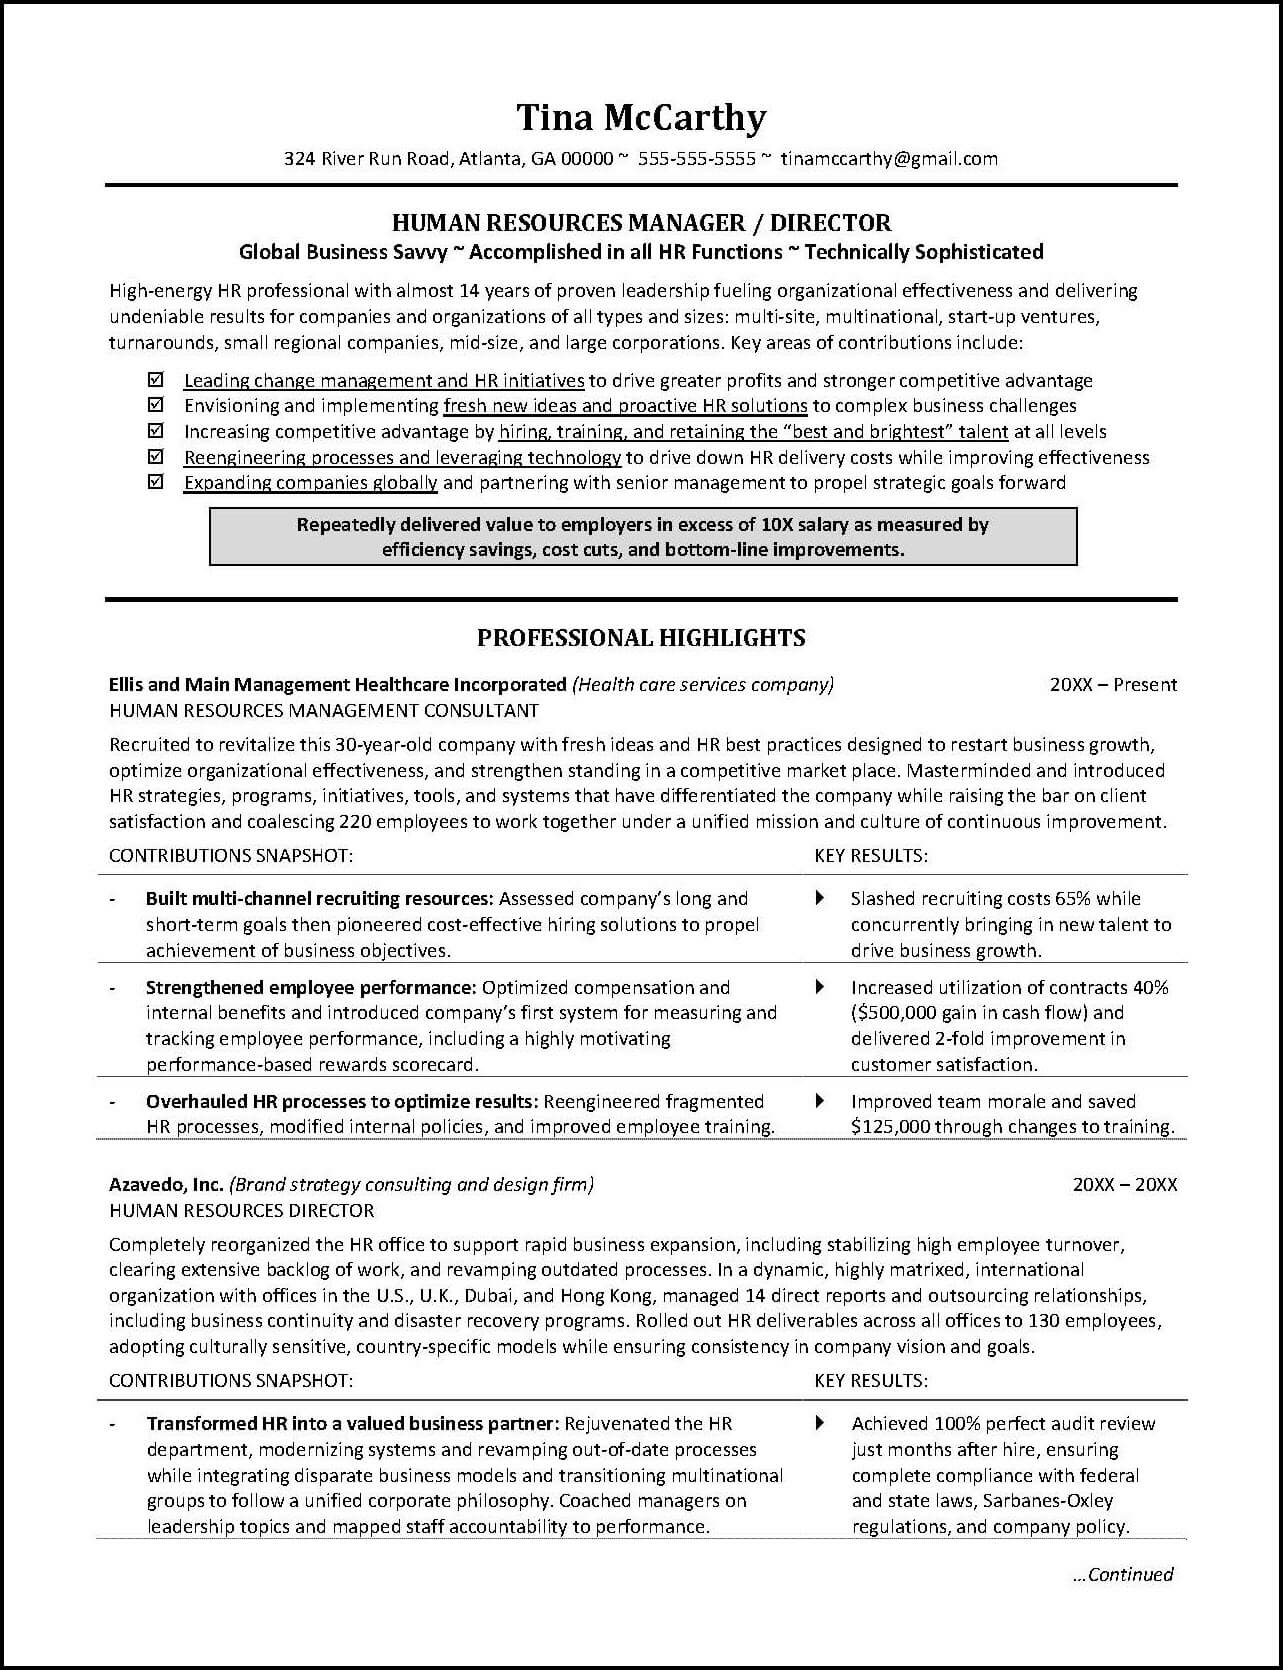 Hr Resumes hr director resume This Sample Human Resources Resume Is Just An Example To Show The Quality And Style Of Our Professional Resume Writing Services